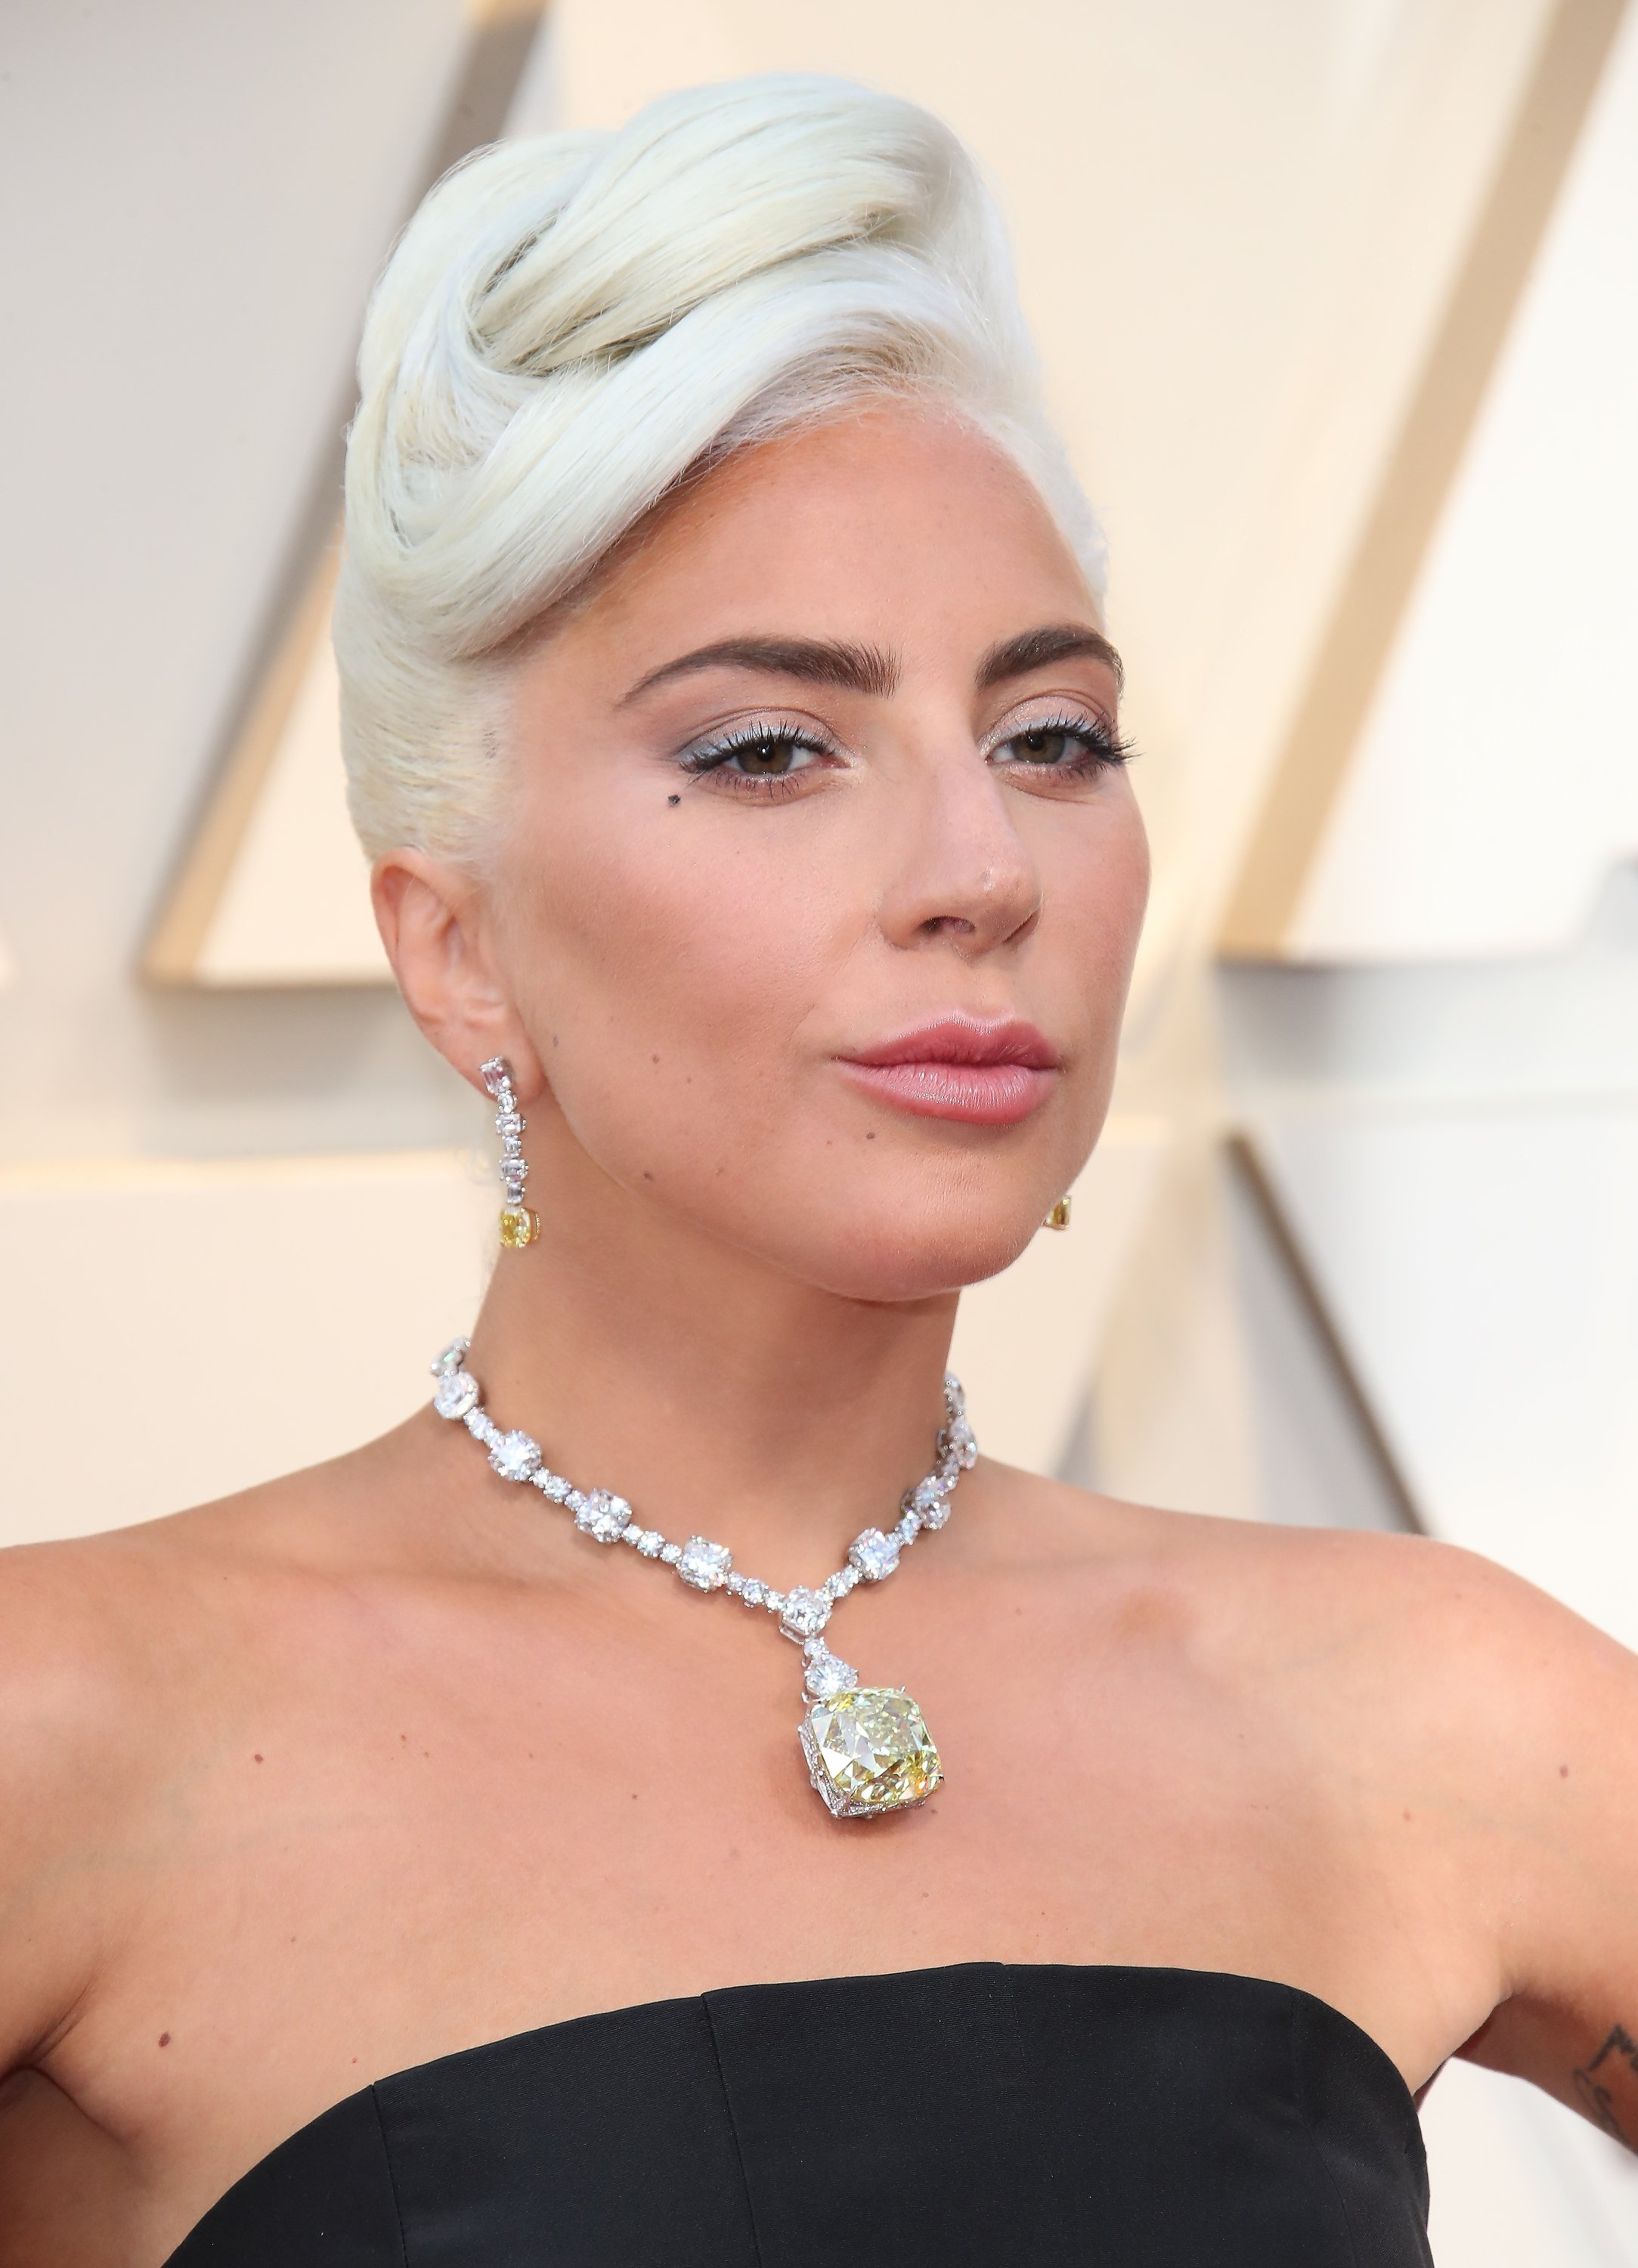 Lady Gaga at the 91st Annual Academy Awards in February 2019. | Photo: Getty Images